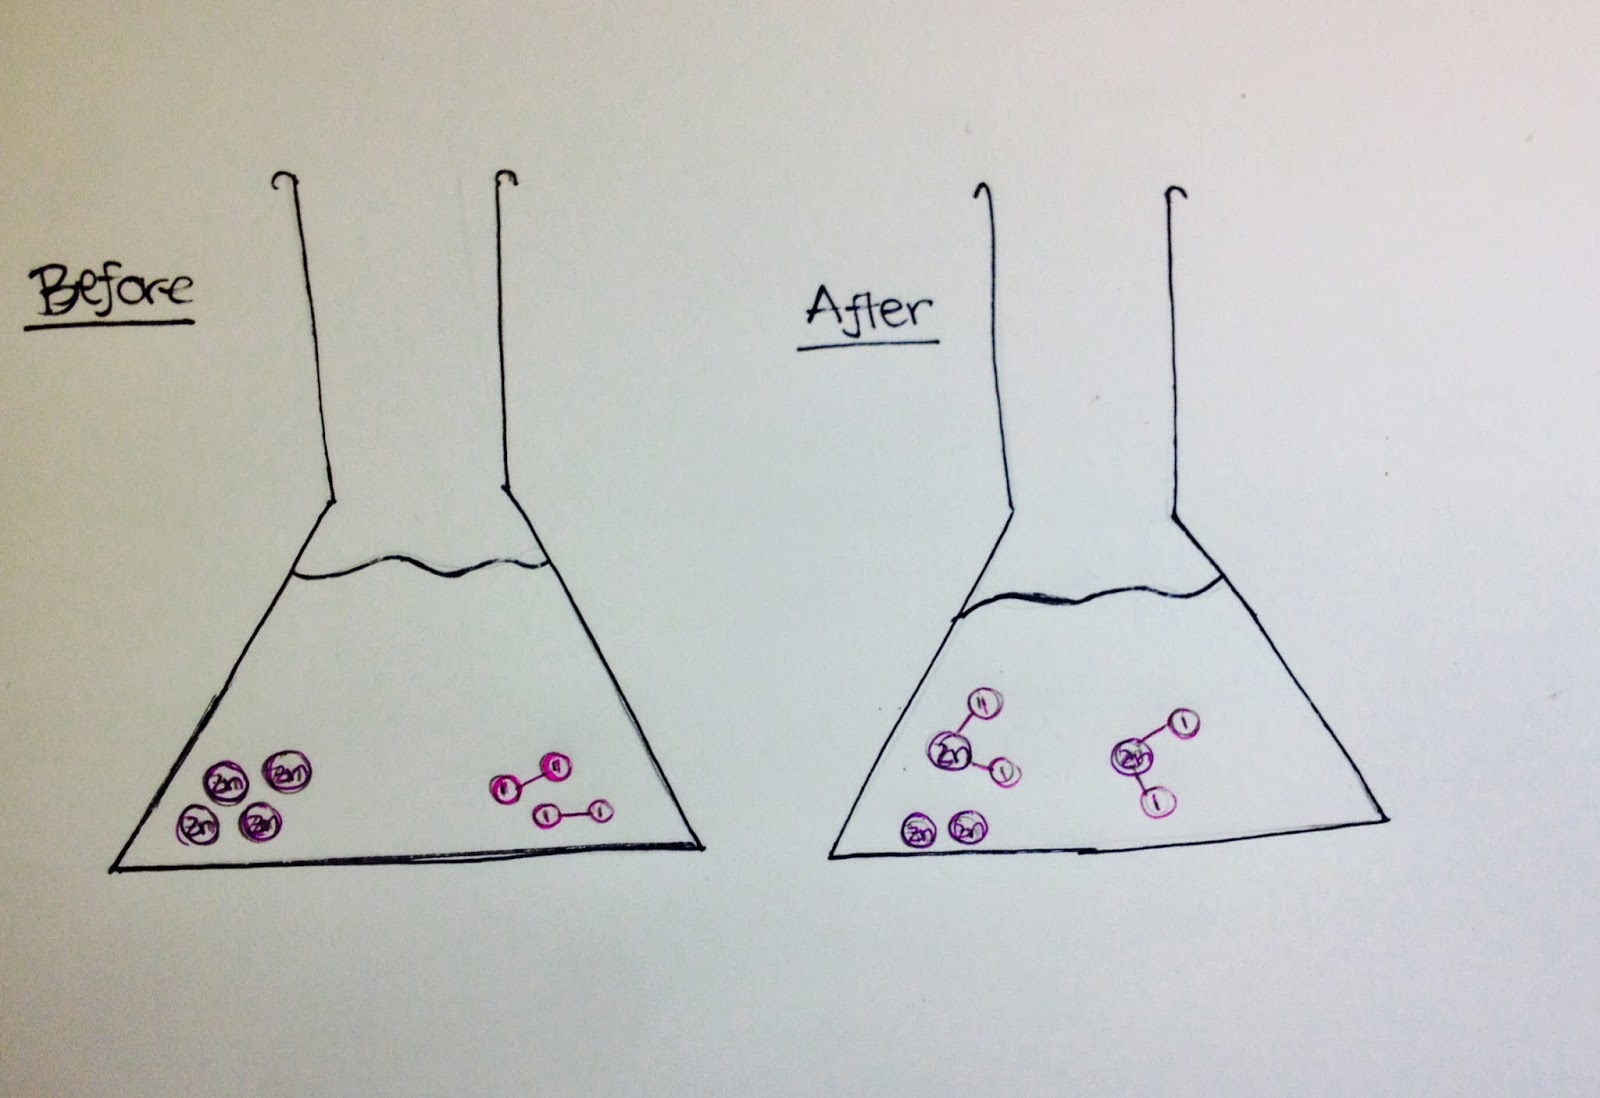 Chemical reactions zinc and iodine lab particle diagram ccuart Gallery